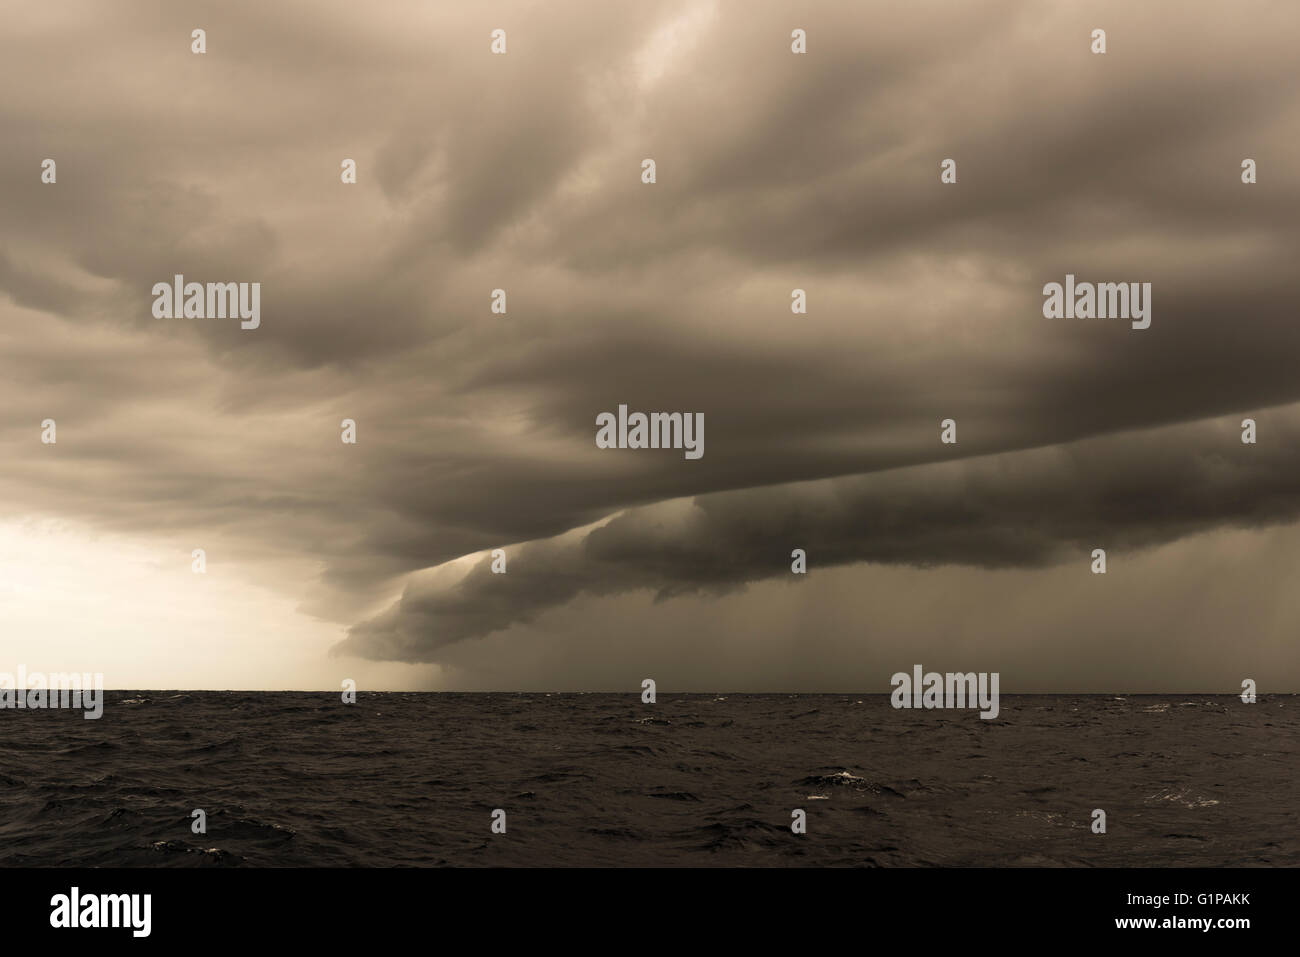 Distinctive line of black clouds,  frontal clouds signalling a wind change seen offshore in the Tasman Sea. - Stock Image